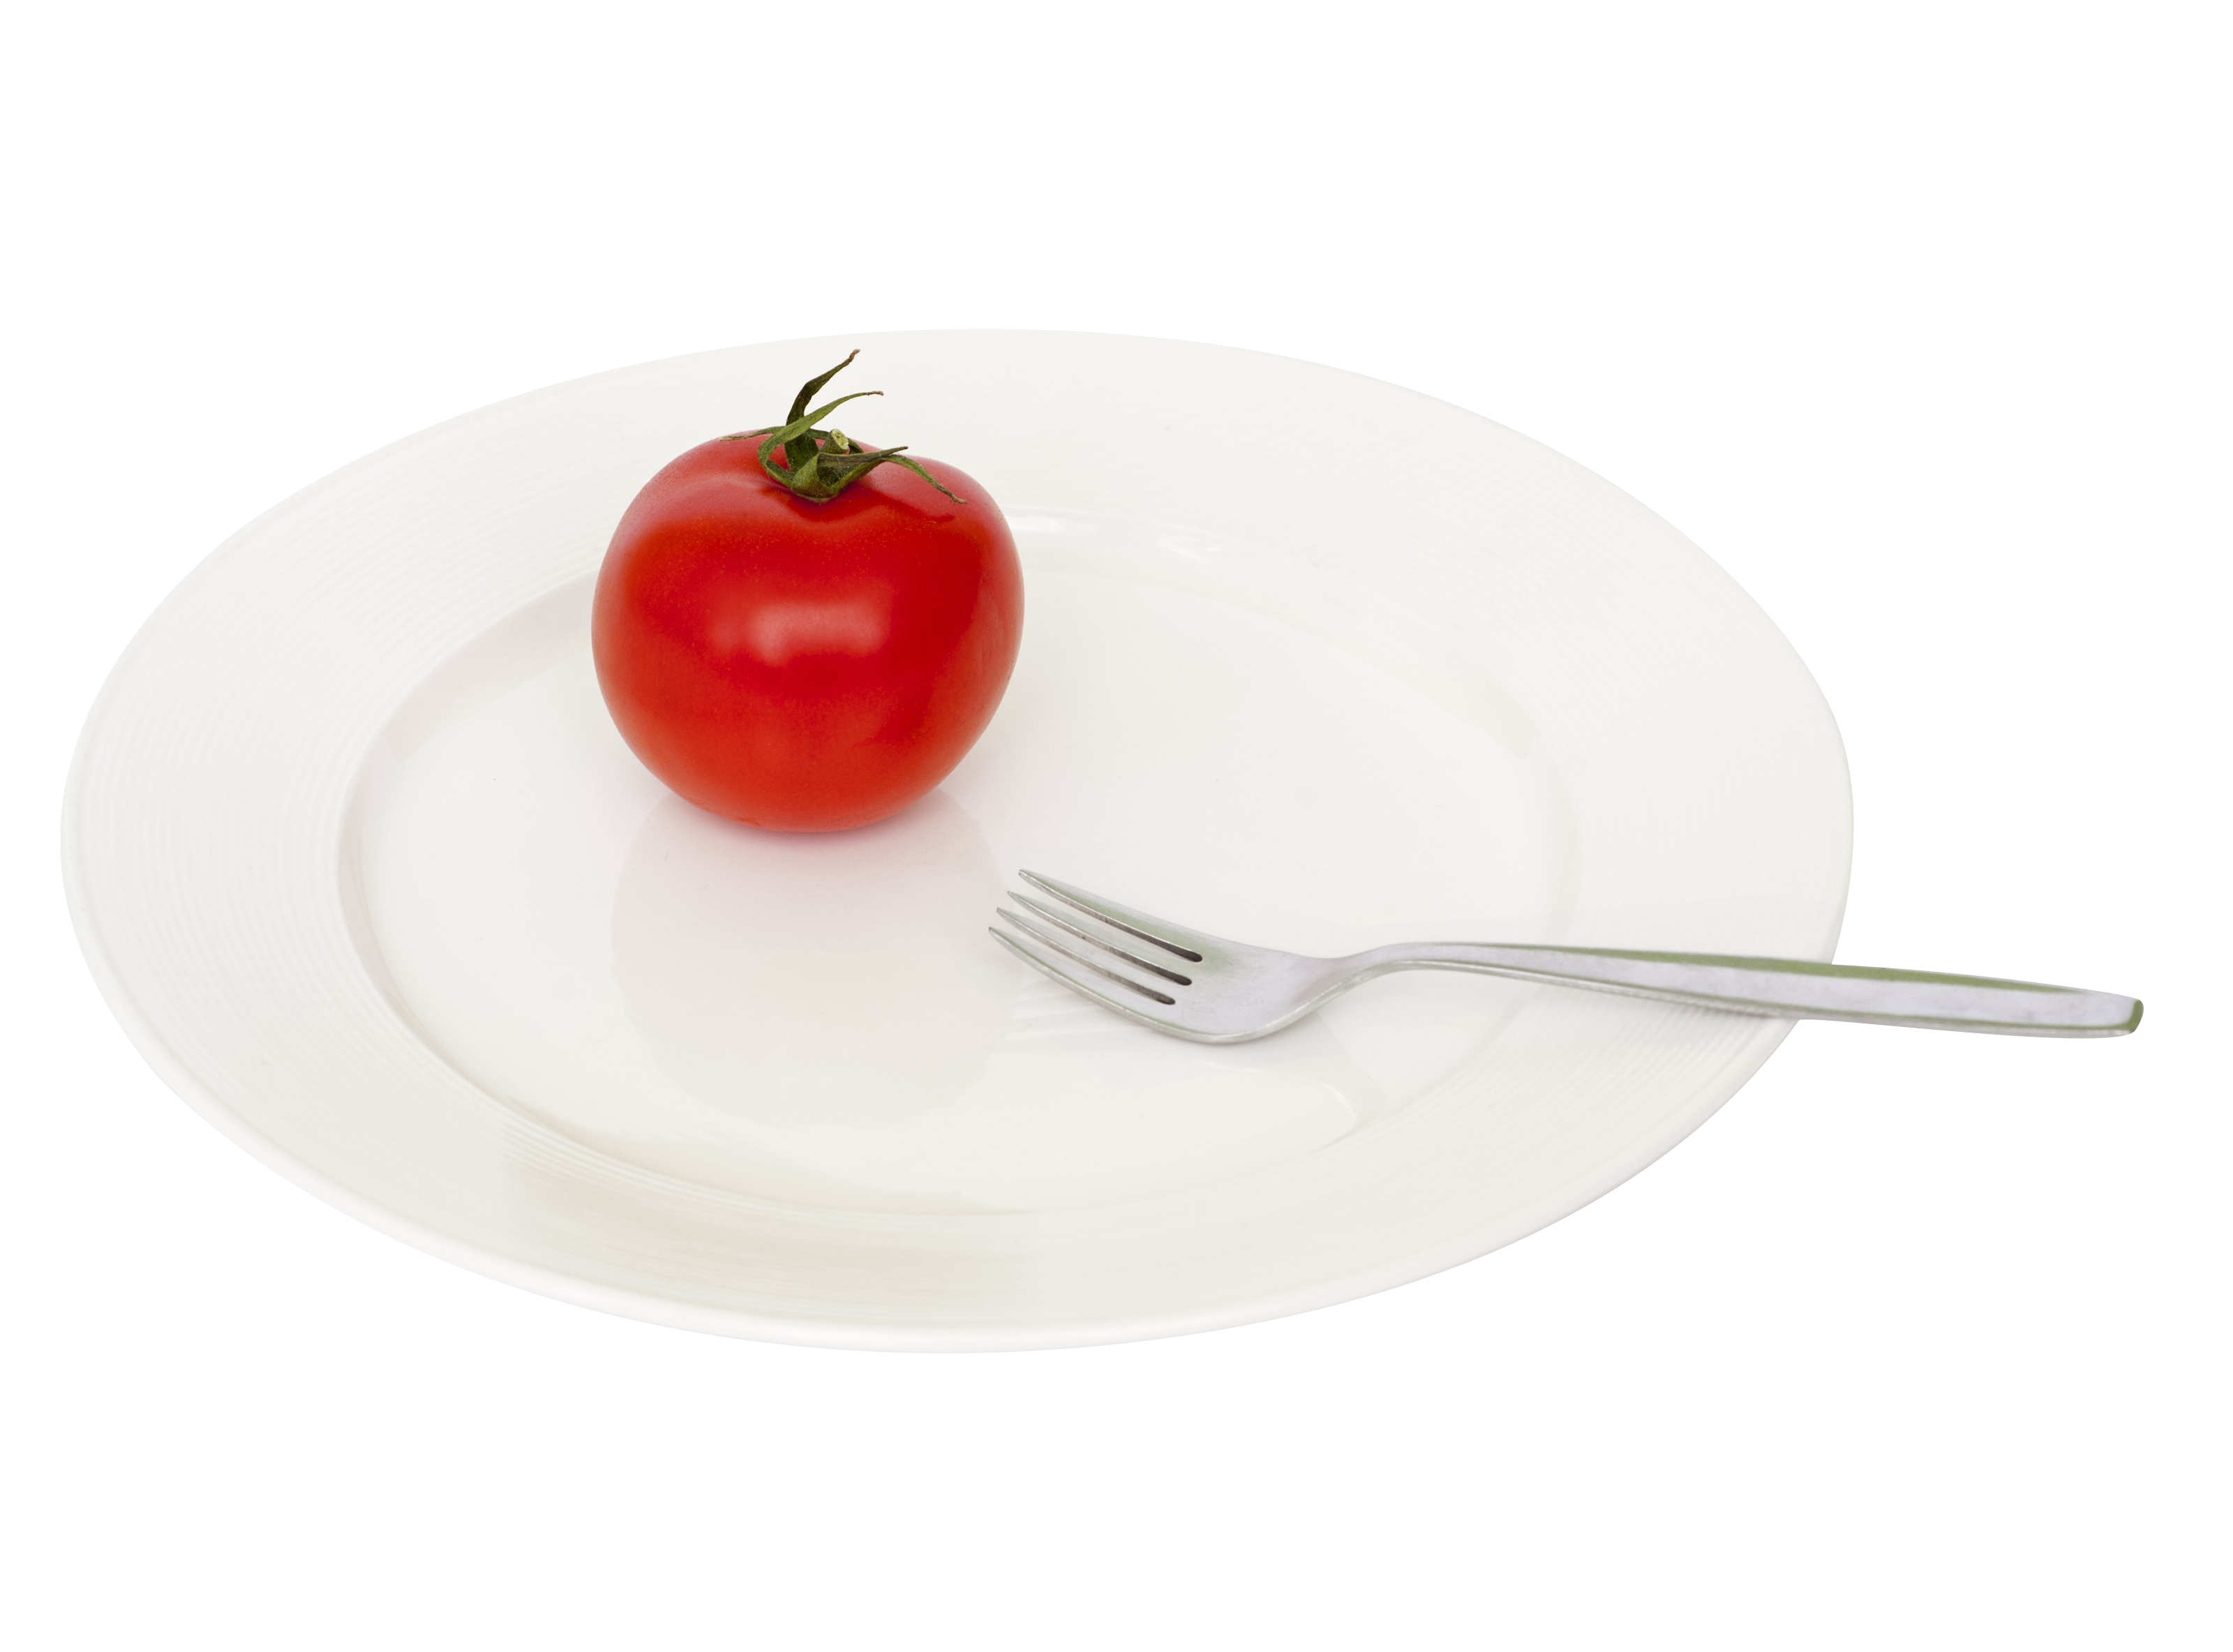 Plate fork png. Tomato image purepng free